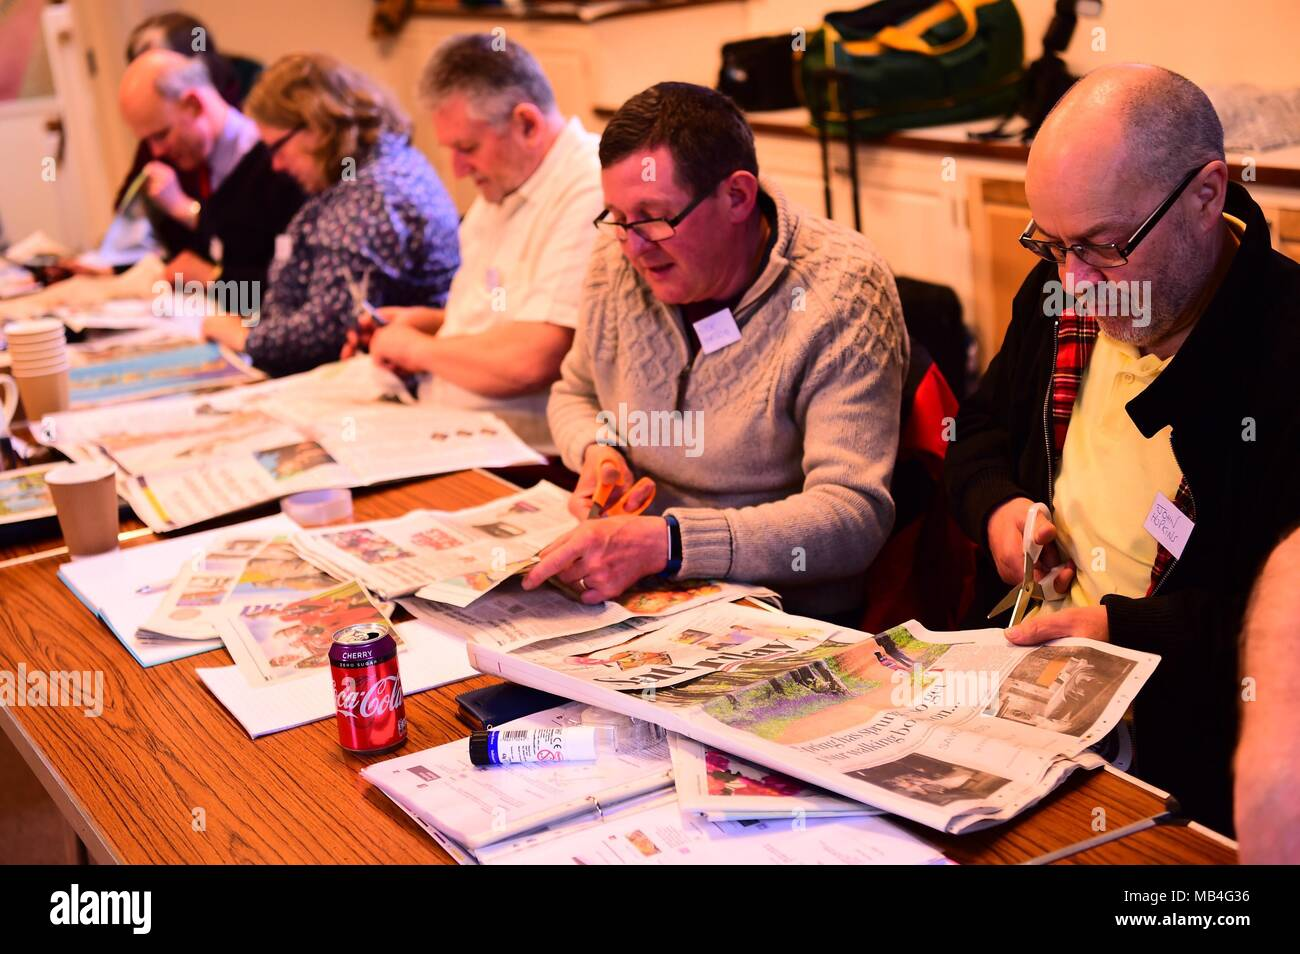 Cirencester England UK, Saturday 07 April 2018  Keen photographers taking part in the annual Alamy Stock Photography workshop under the tuition of professional photographer Keith Morris, in Cirencester in the heart of the English Cotswolds    photo © Keith Morris / Alamy Live News Stock Photo